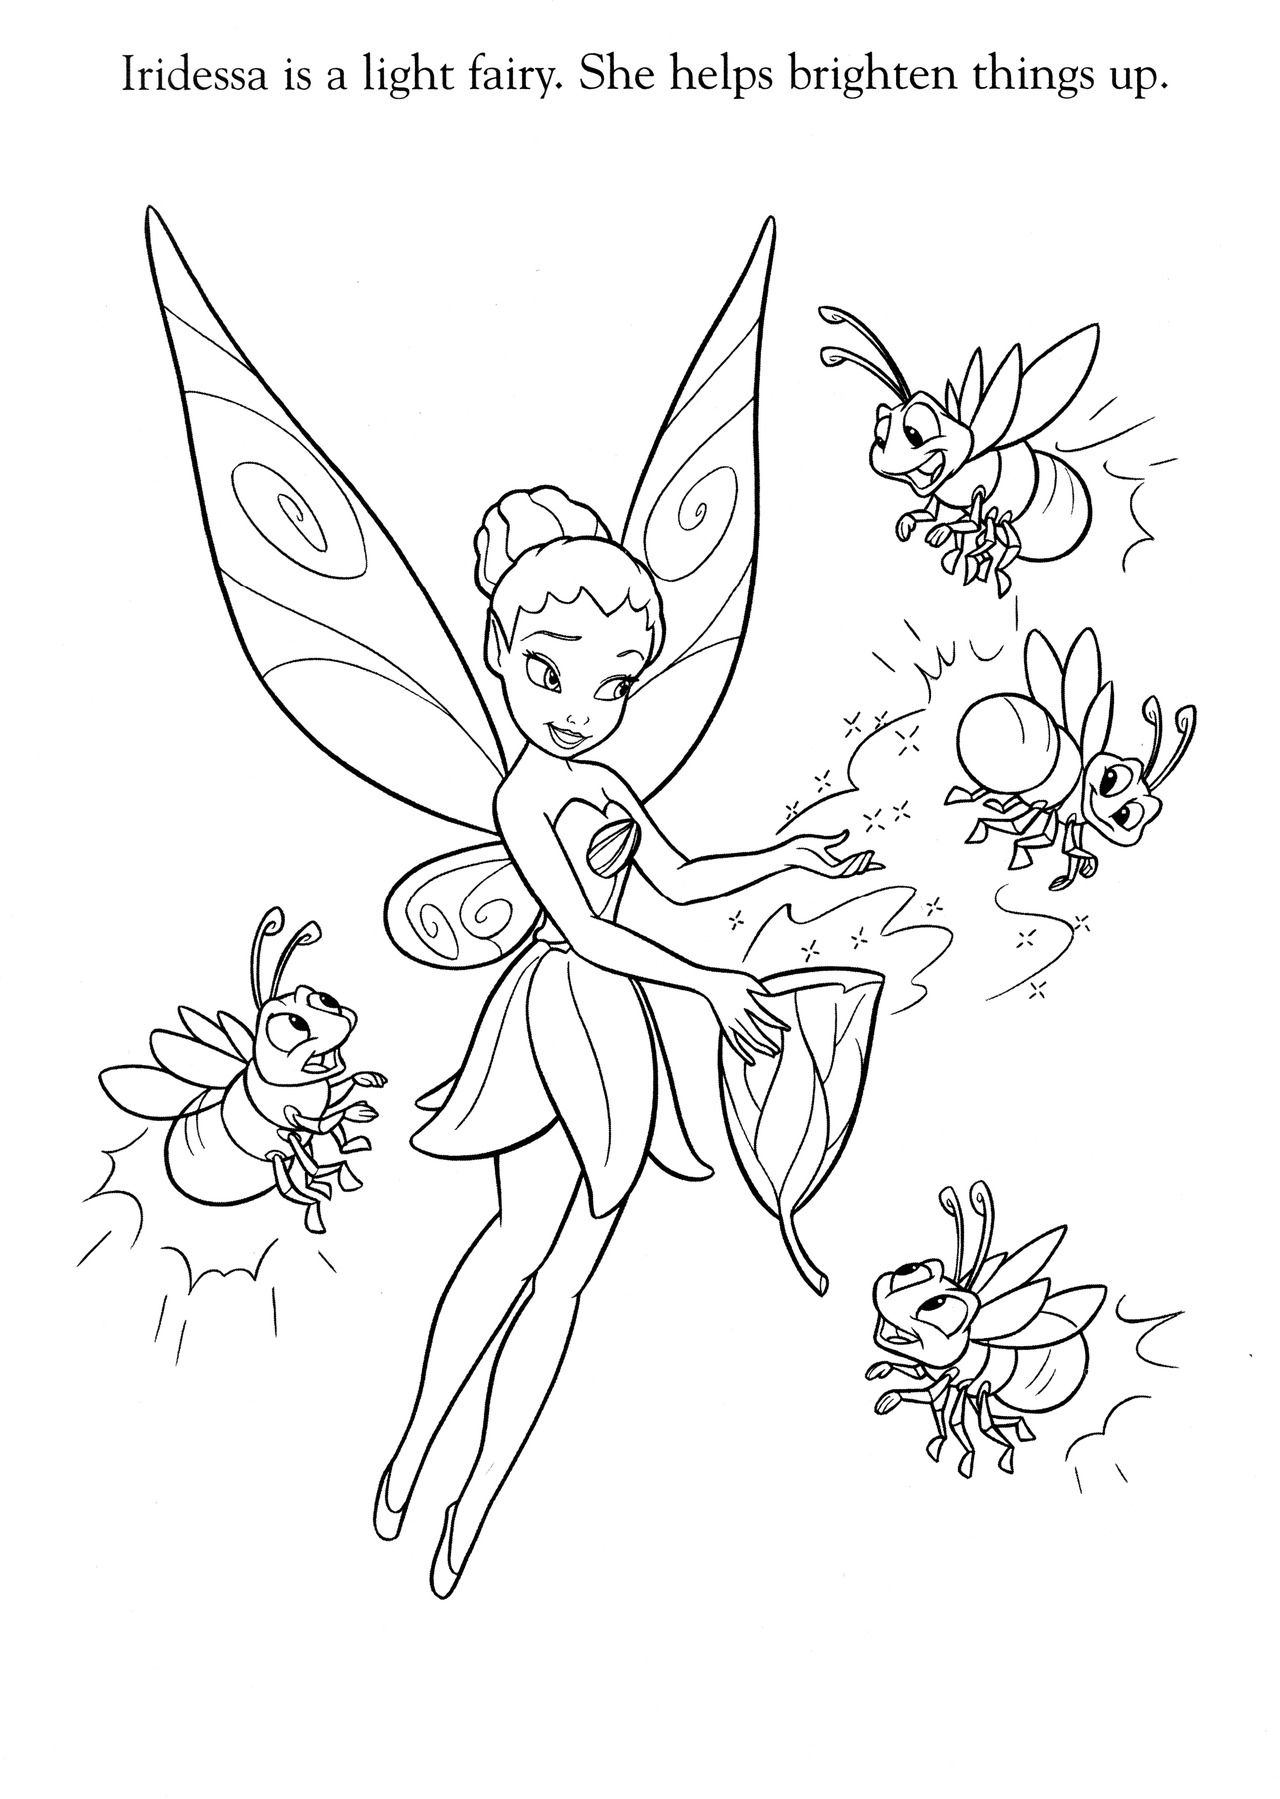 Pin By Deb Vanportfleet On Color Pages Tinkerbell Coloring Pages Fairy Coloring Pages Disney Coloring Pages [ 1799 x 1280 Pixel ]